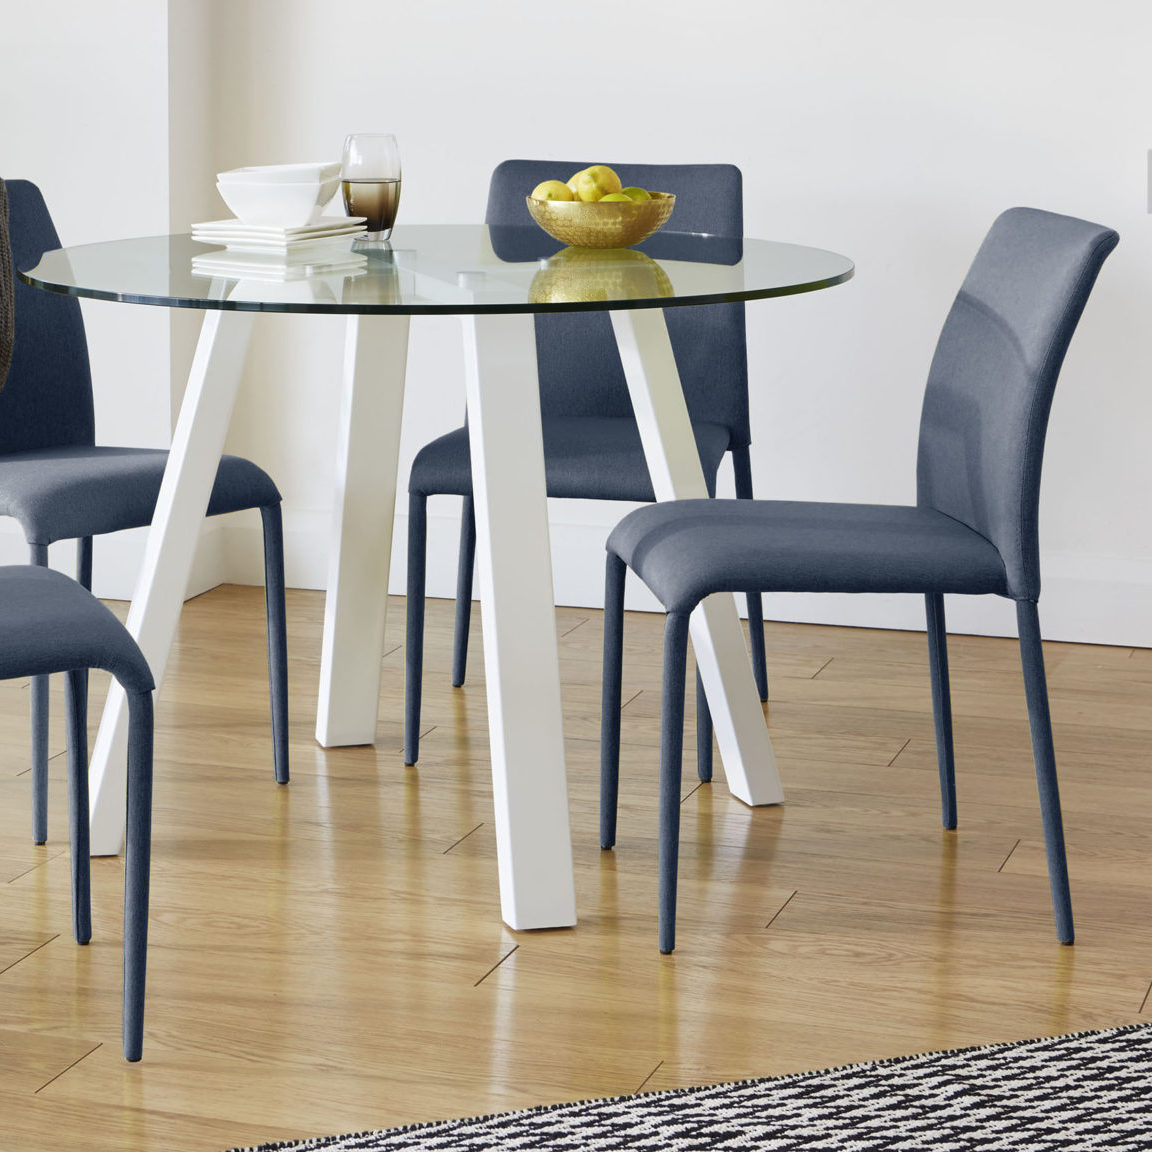 Riva Stackable Fabric Dining Chair, £69